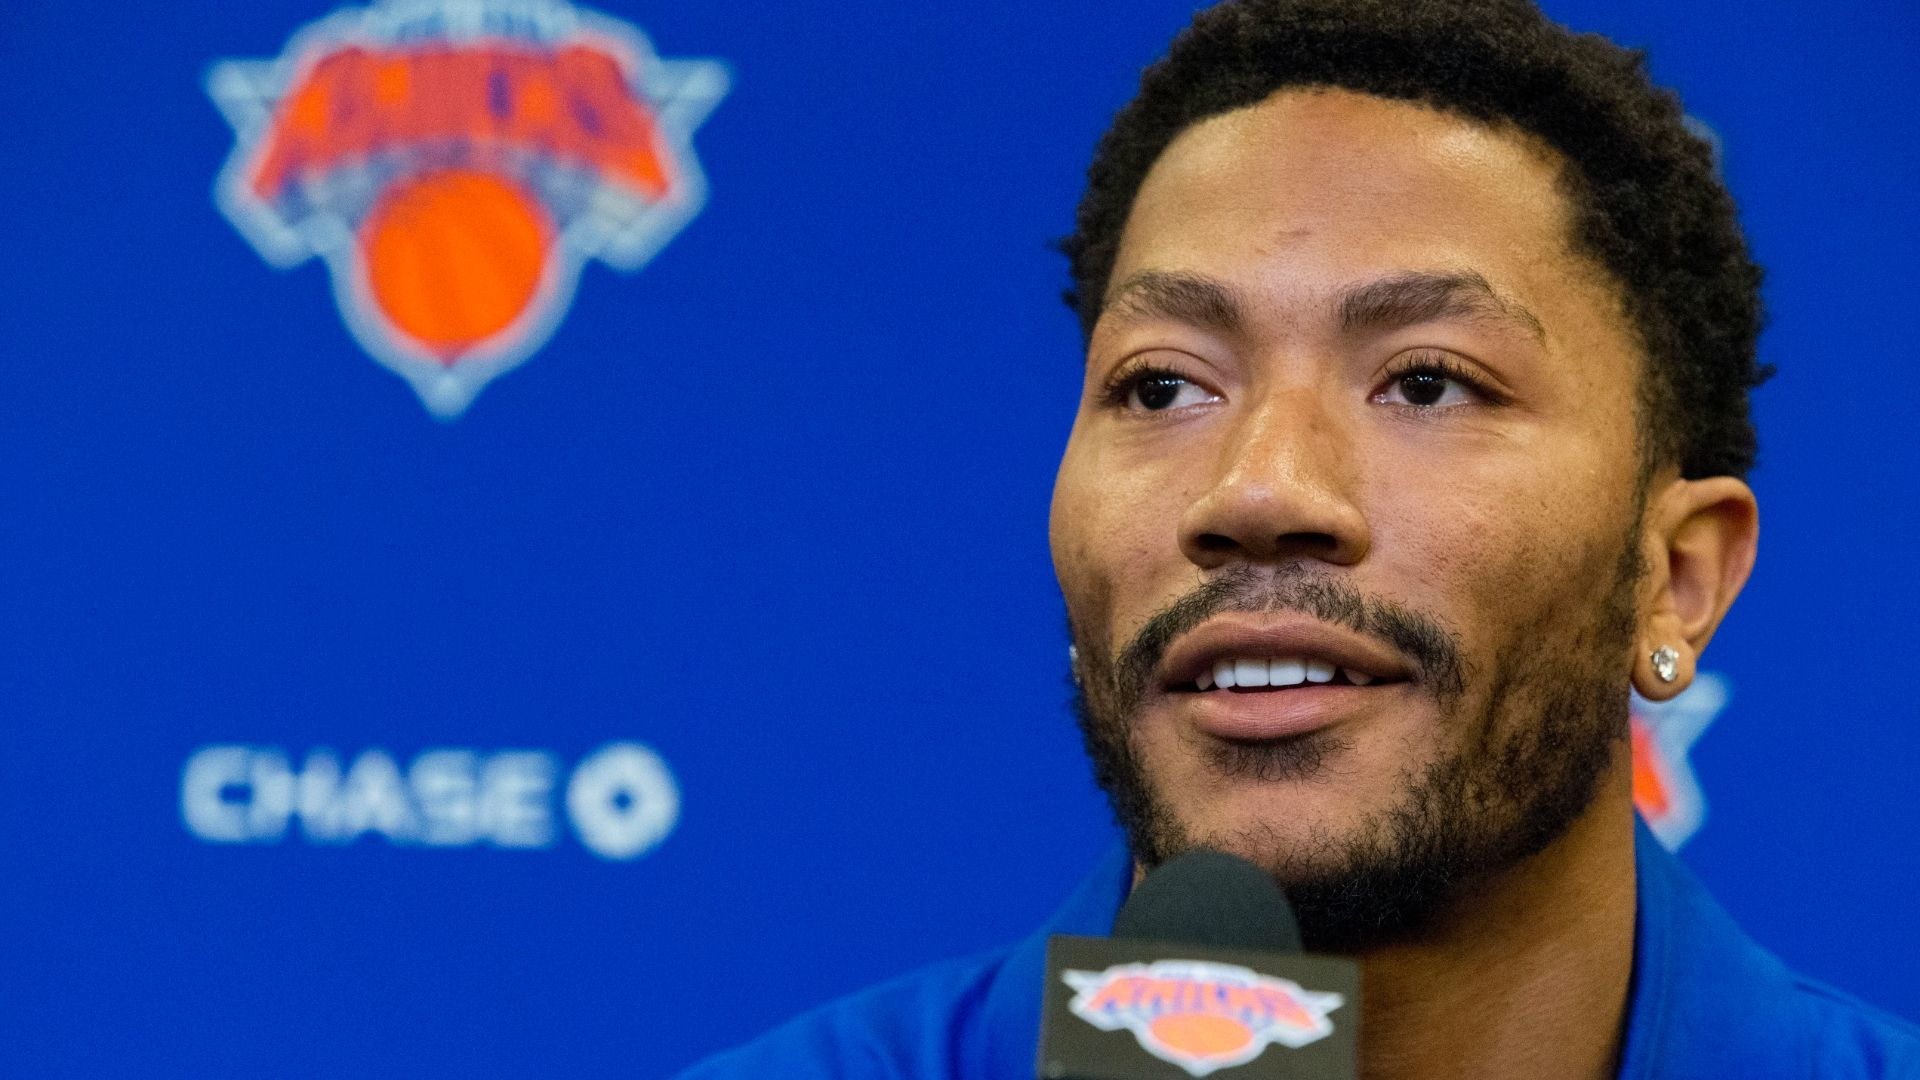 https://secure.espncdn.com/combiner/i?img=/media/motion/2016/0624/dm_160624_nba_knicks_drose_presser/dm_160624_nba_knicks_drose_presser.jpg